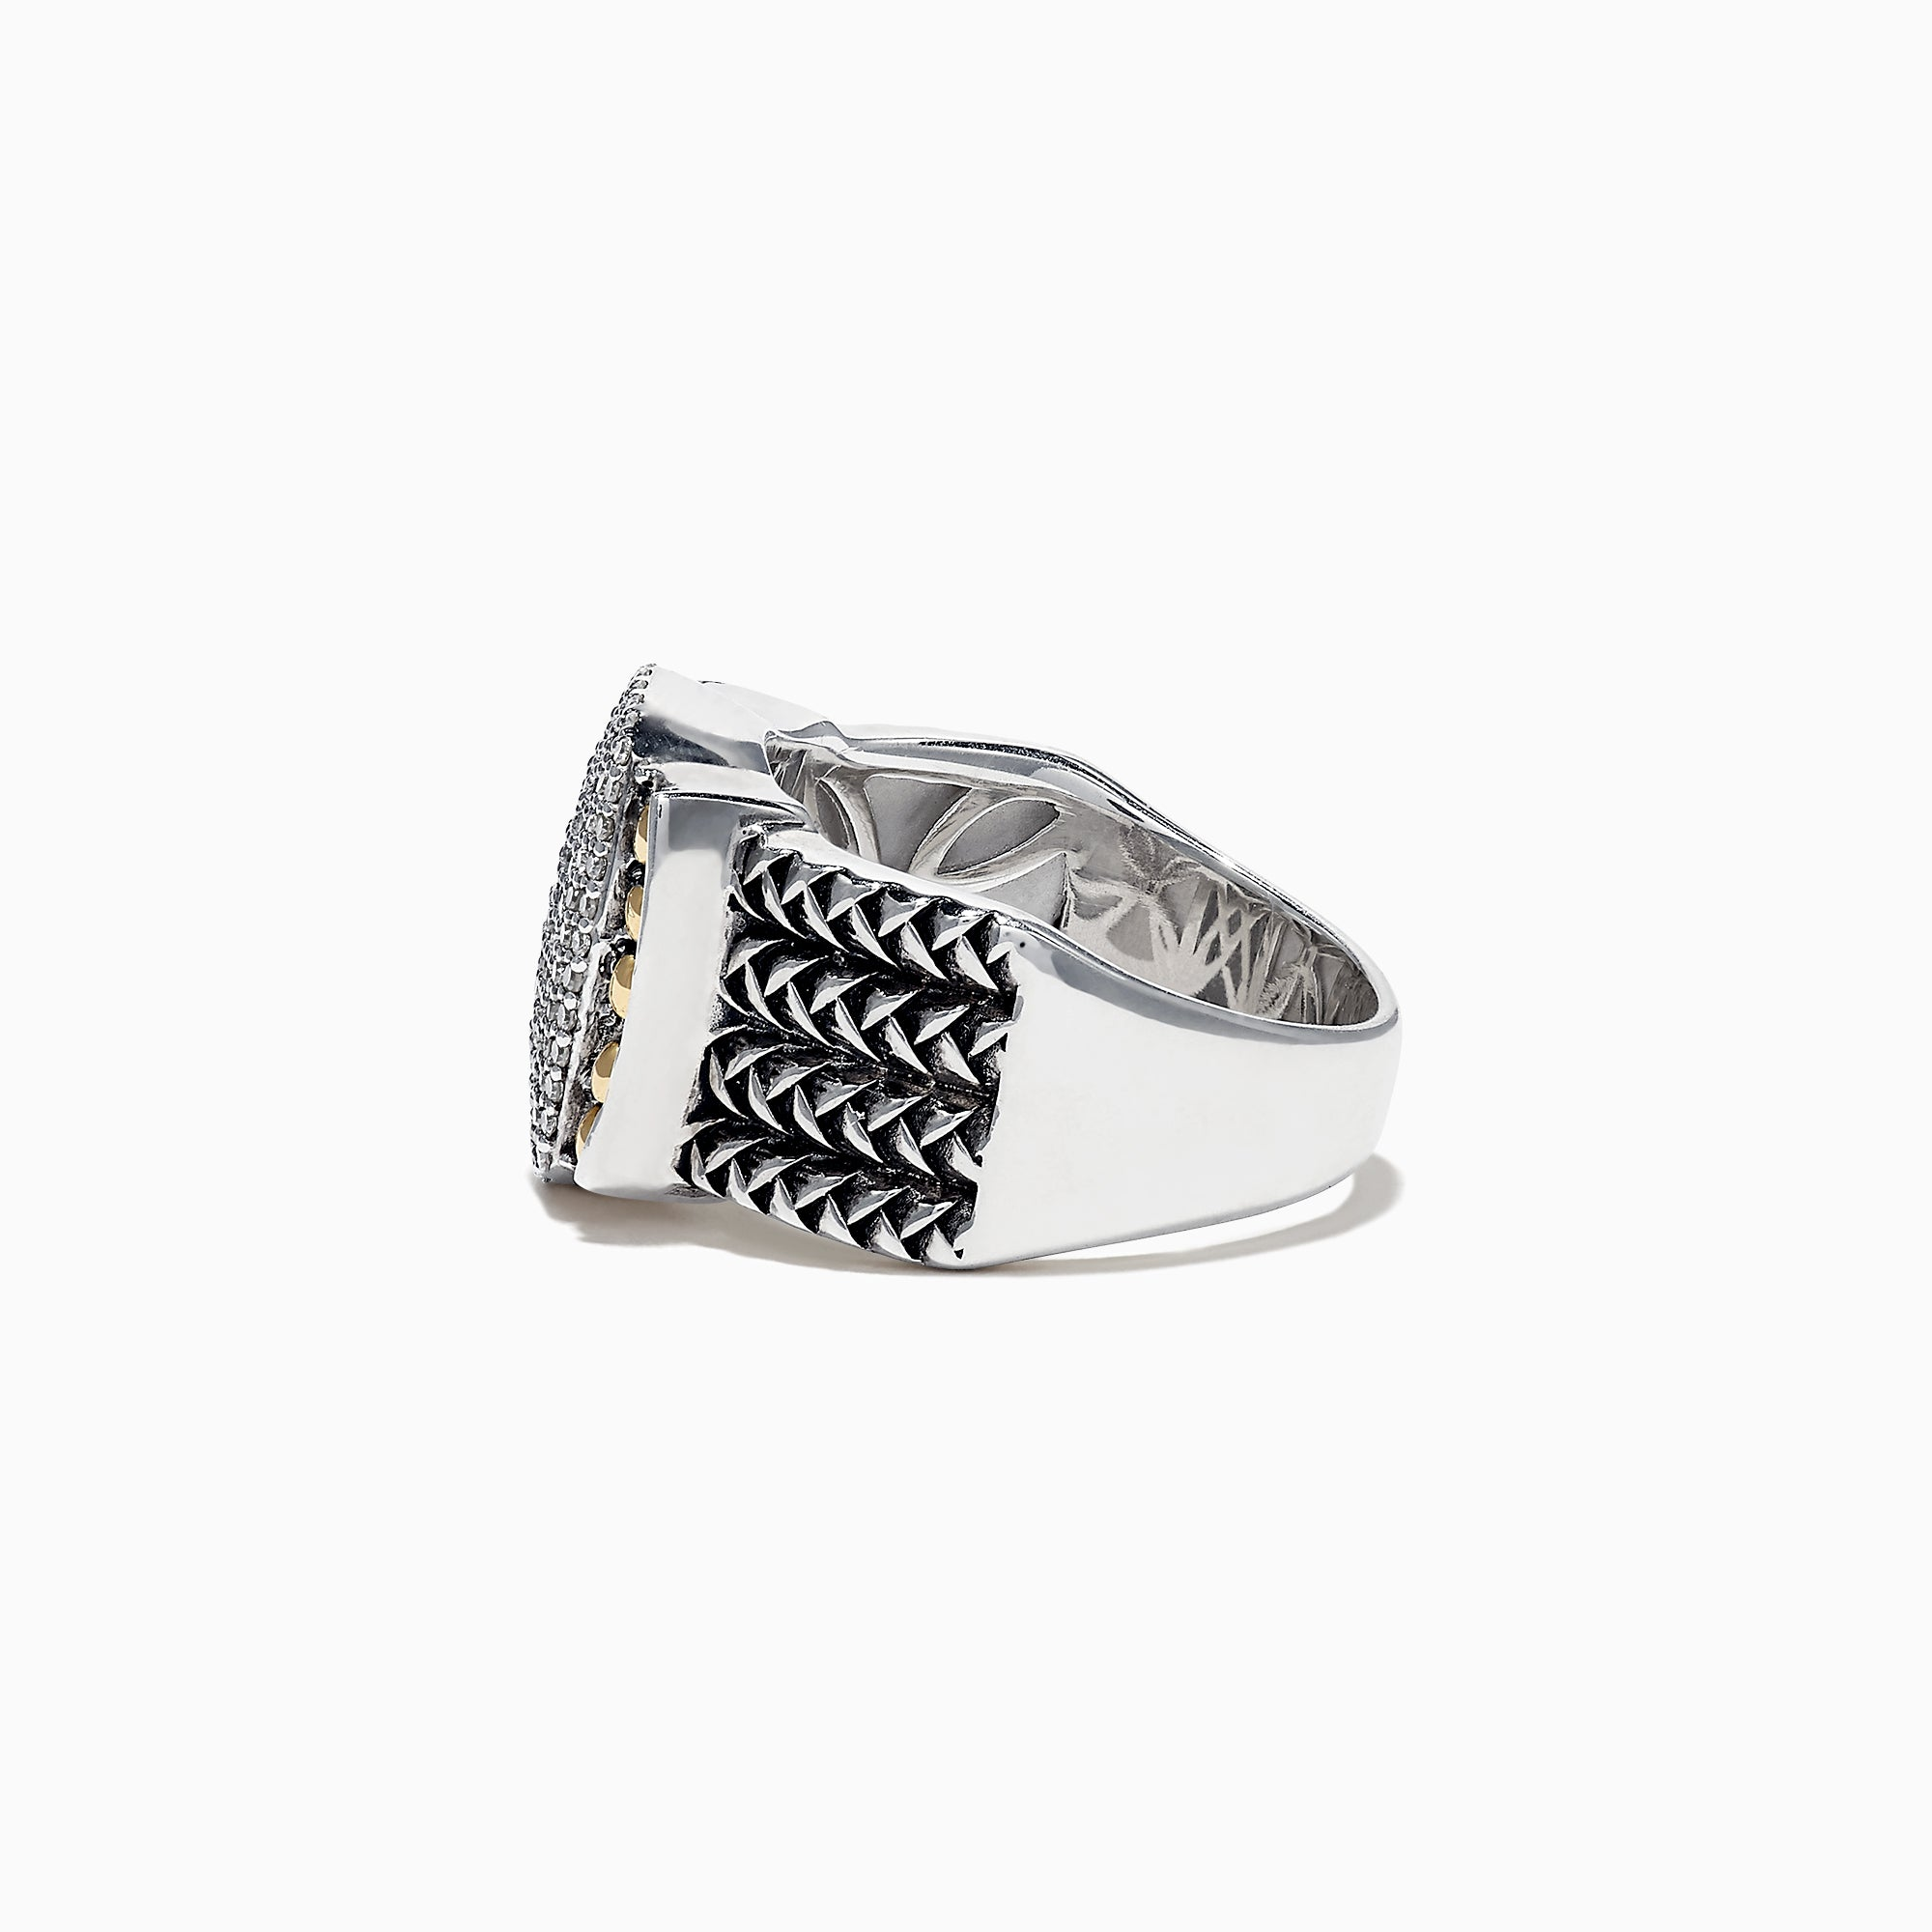 Effy 925 Sterling Silver and 18K Yellow Gold Diamond Ring, 0.39 TCW